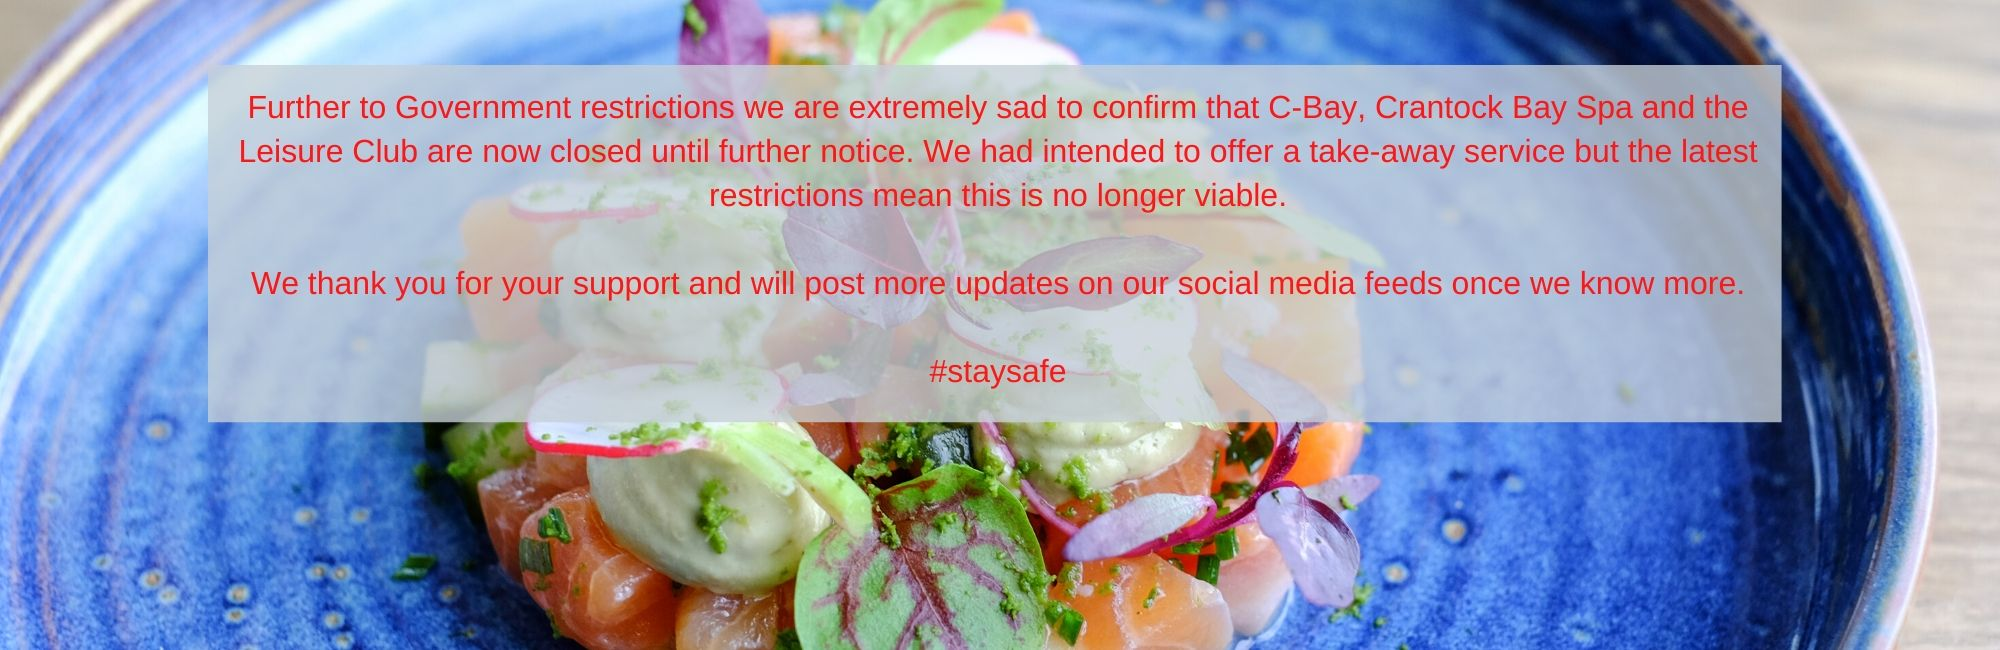 Further to Government restrictions we are extremely sad to confirm that C Bay Crantock Bay Spa and the Leisure Club are n 1 - C-Bay café/bar/bistro